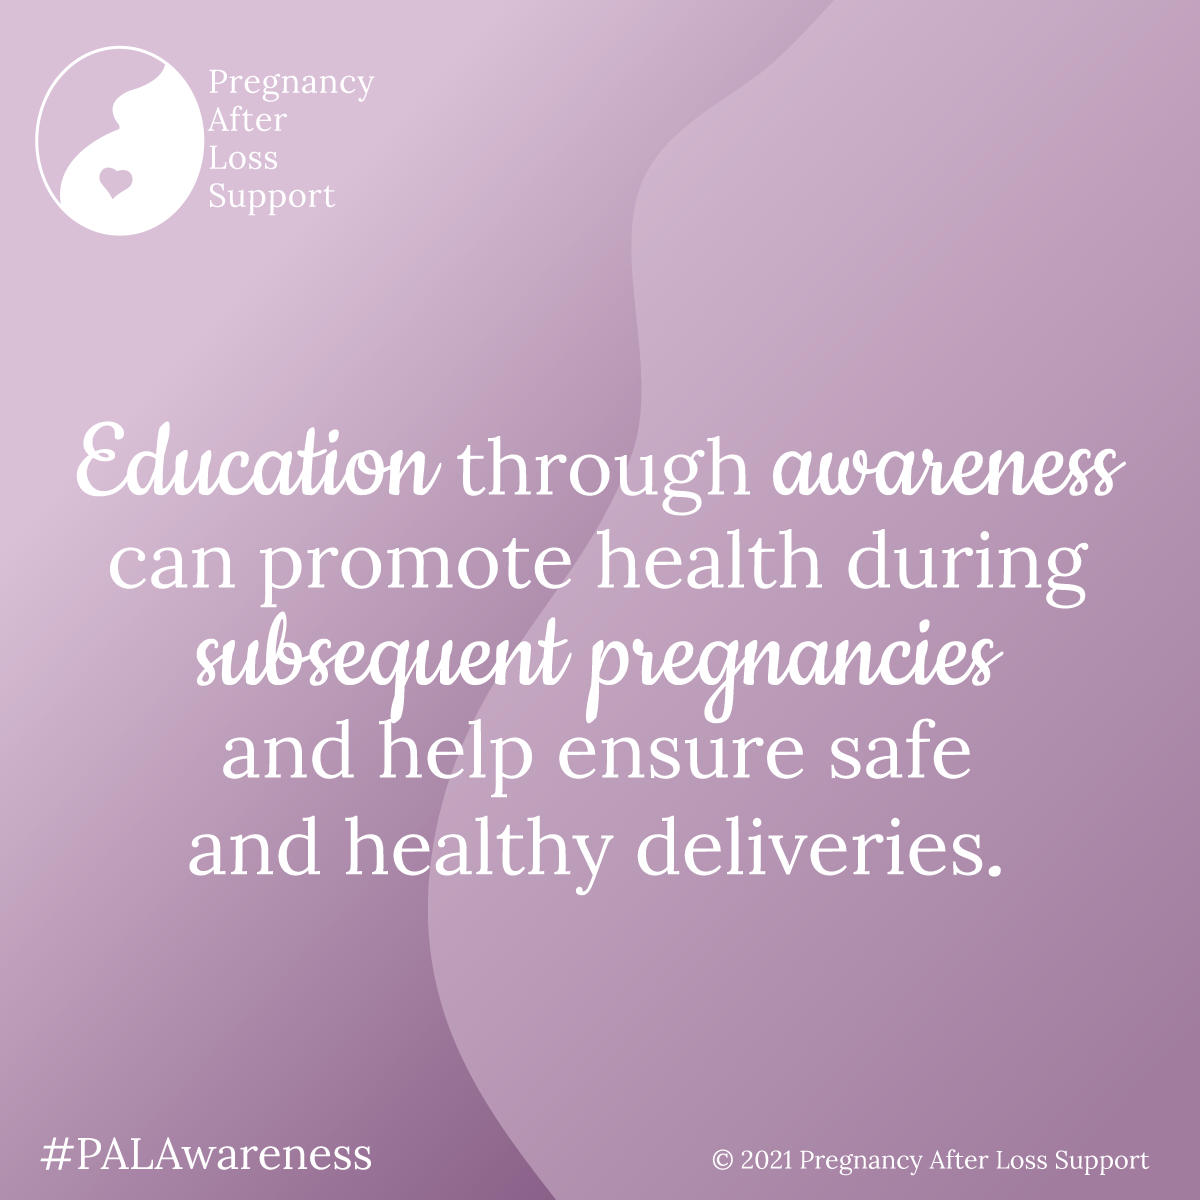 Education through awareness can promote health during subsequent pregnancies